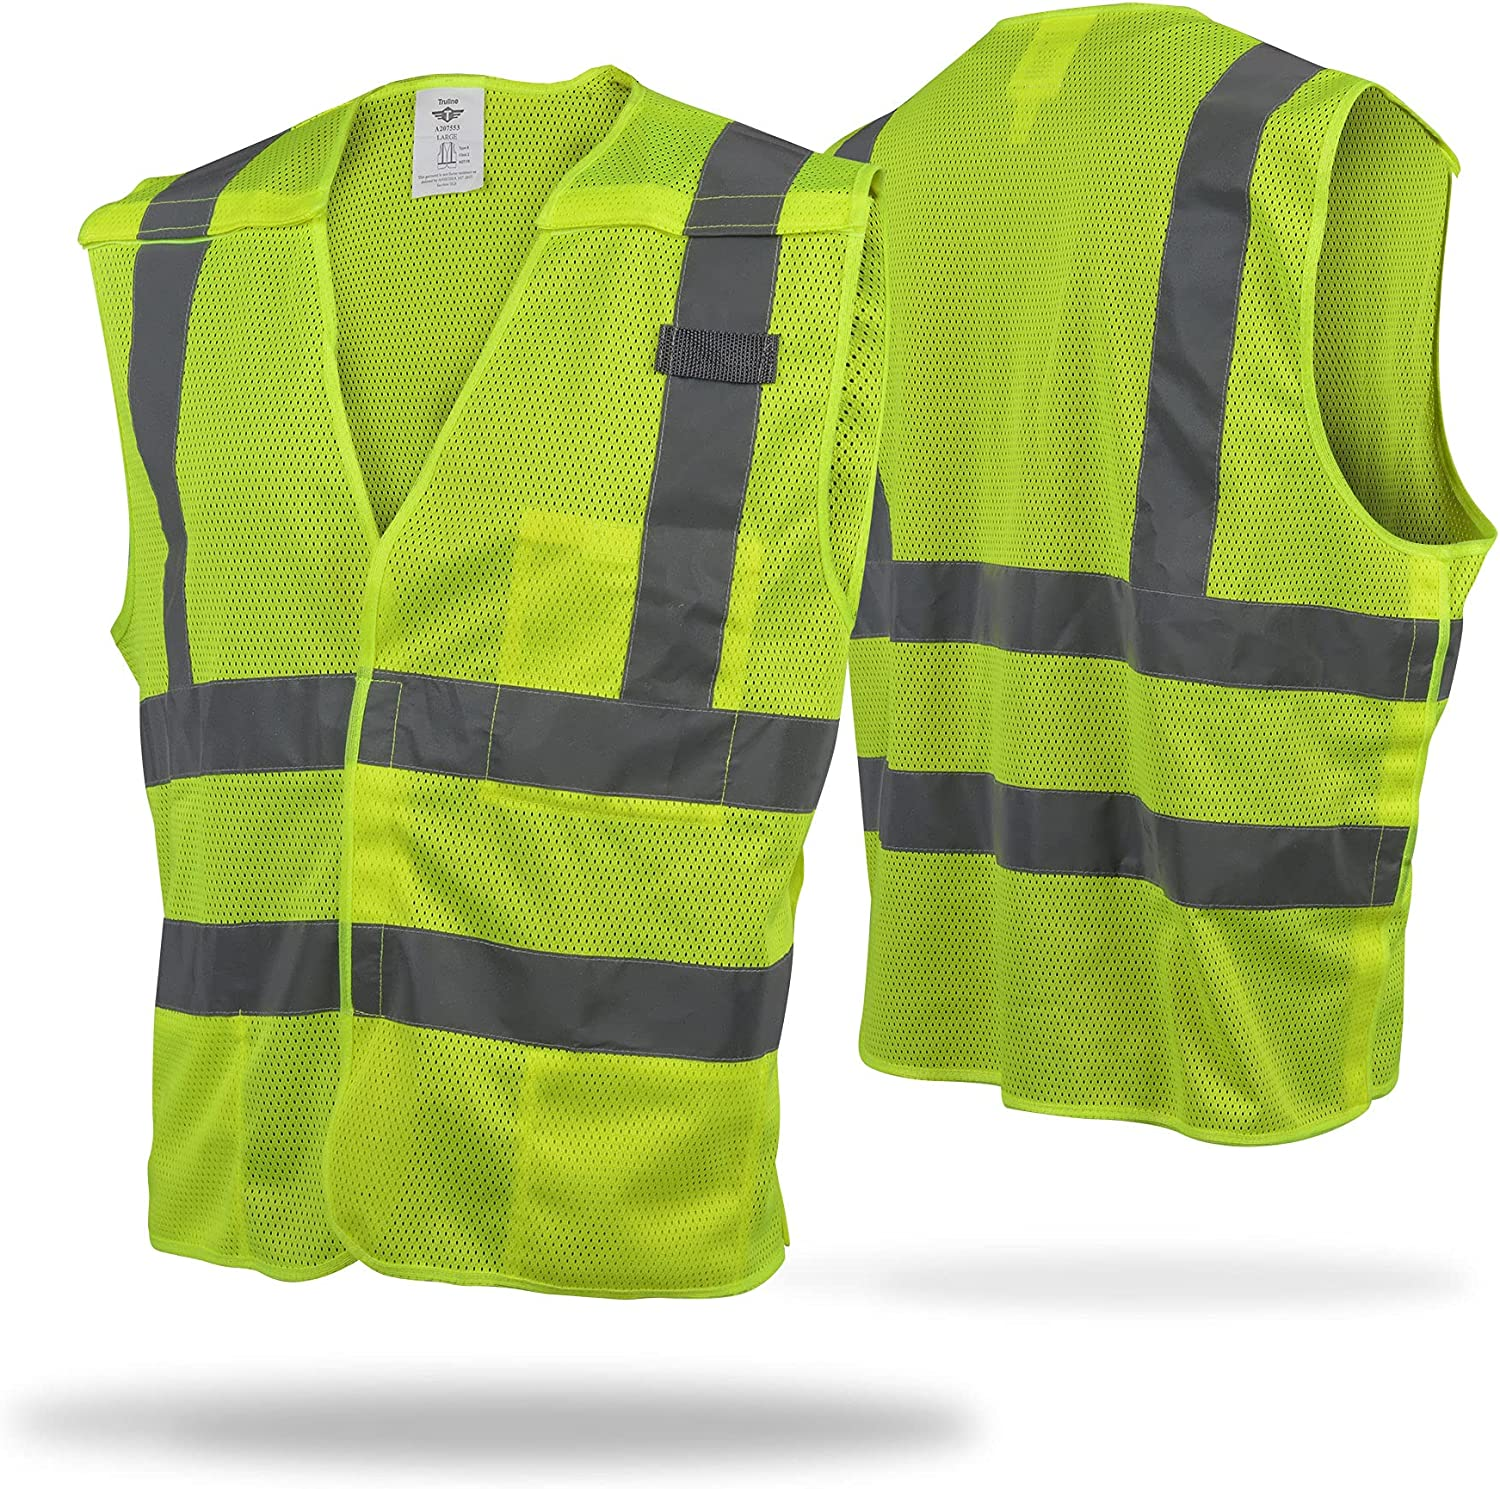 Safety Vest High New popularity Visibility - with 3 Vis Pocket 2021